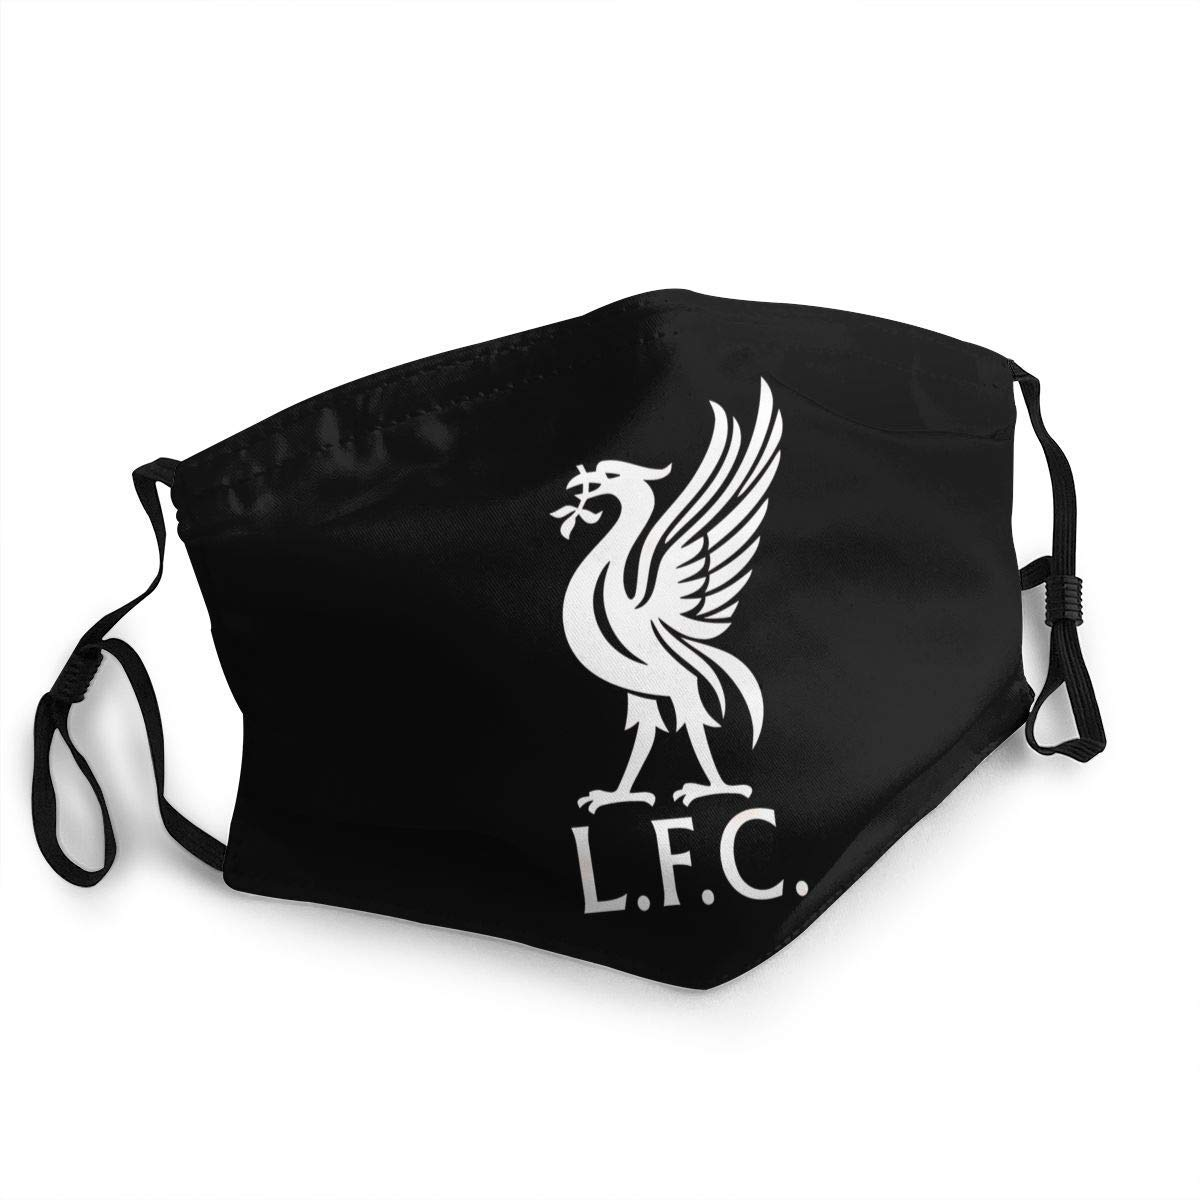 N/N Liverpool F.C. Football Club Logo Unisex Breathable Soft and Comfortable Breathable Wind and Washable Dustproof Face Black